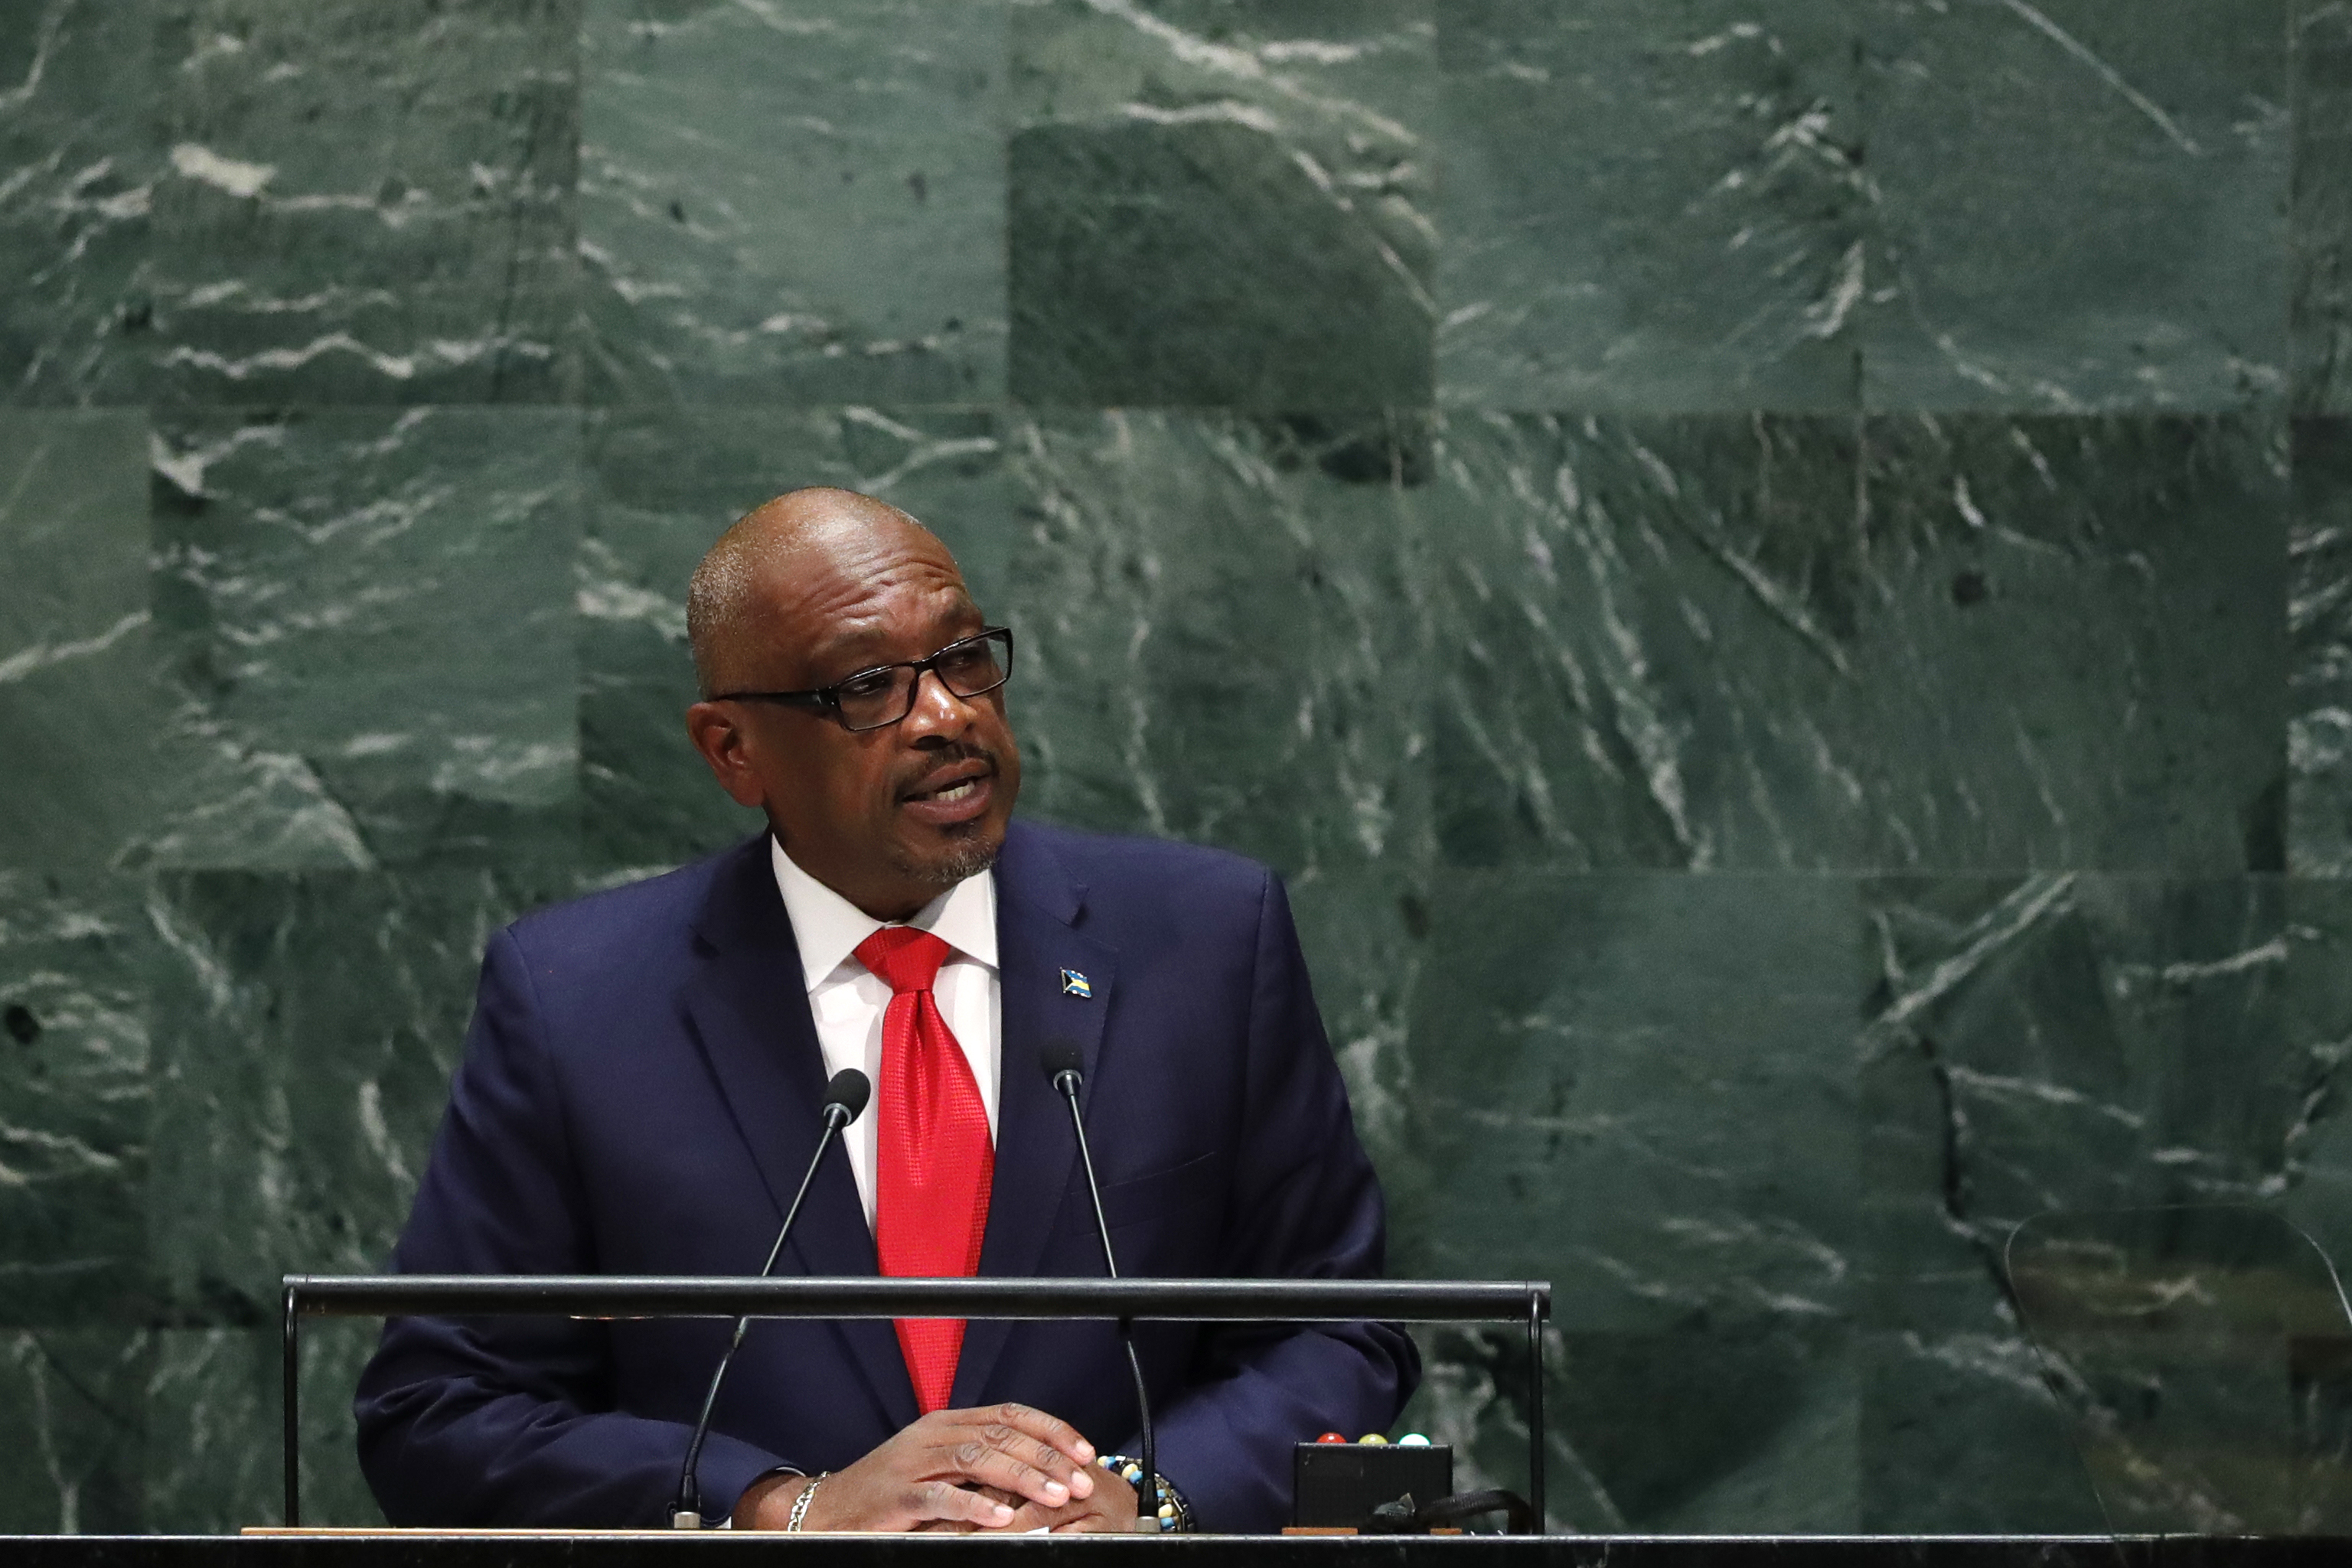 Prime Minister of Bahamas Hubert Minnis addresses the 74th session of the United Nations General Assembly at U.N. headquarters in New York, U.S., September 27, 2019. REUTERS/Lucas Jackson